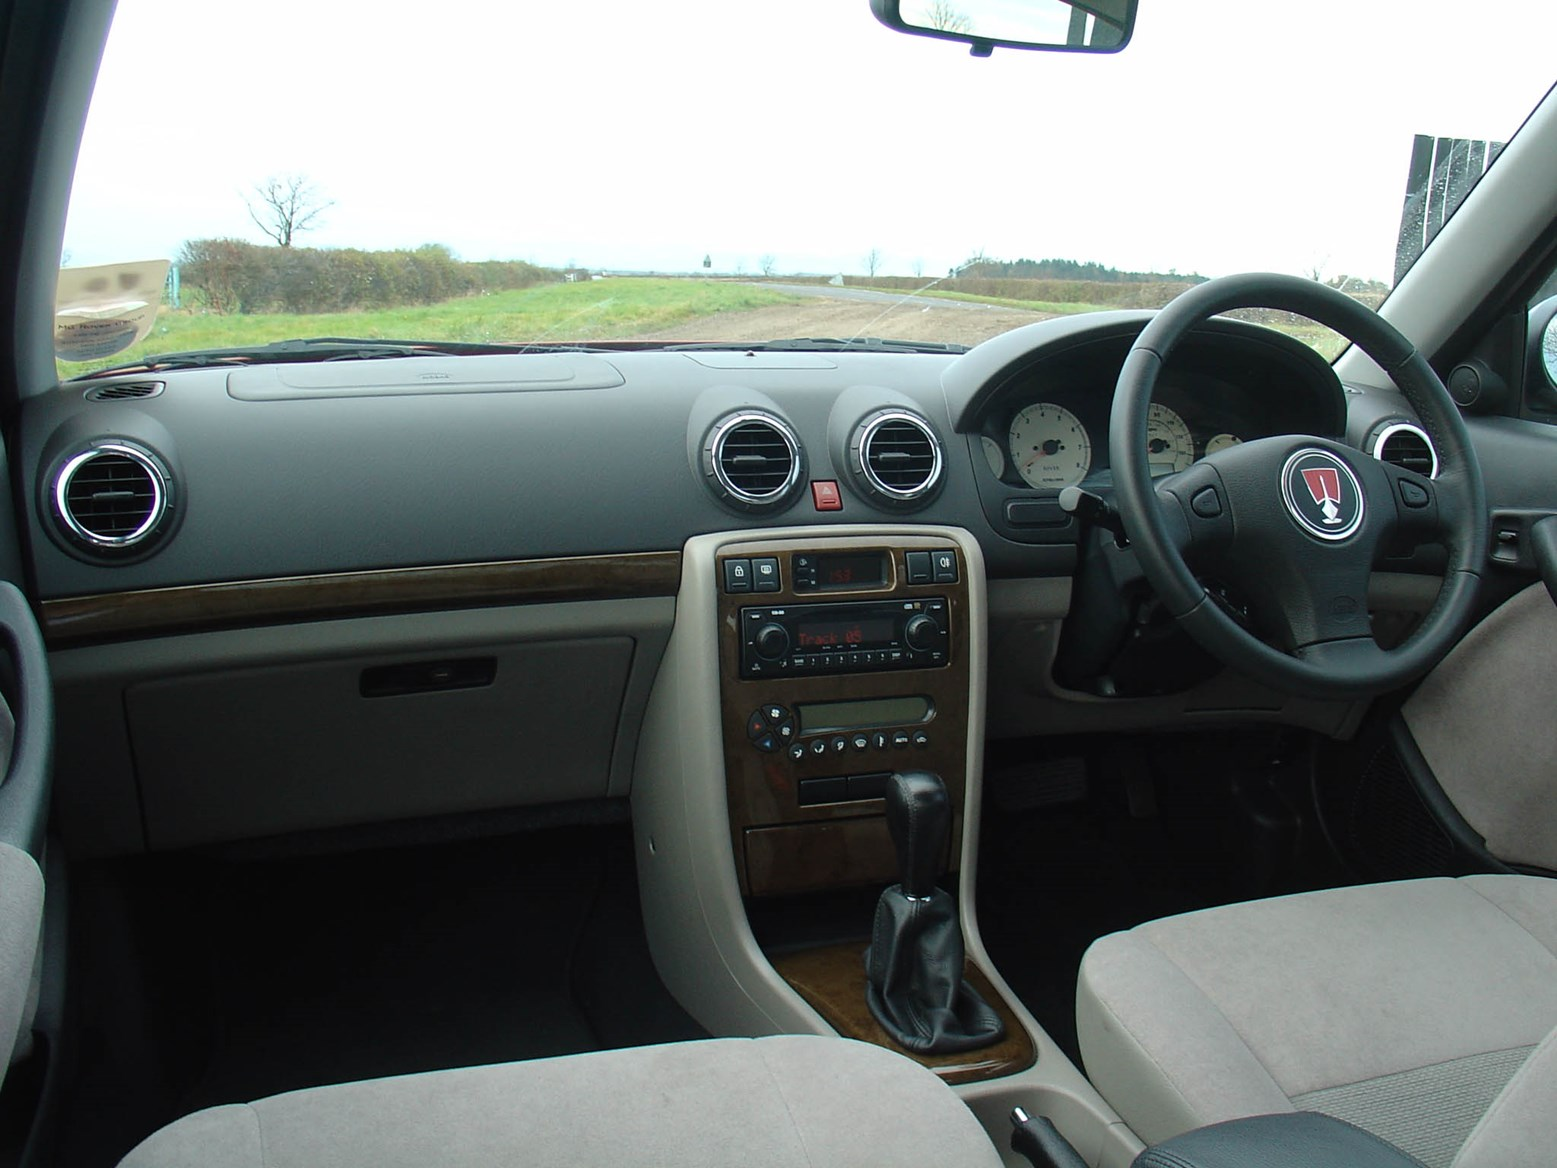 view all images of the rover 45 hatchback 04 05